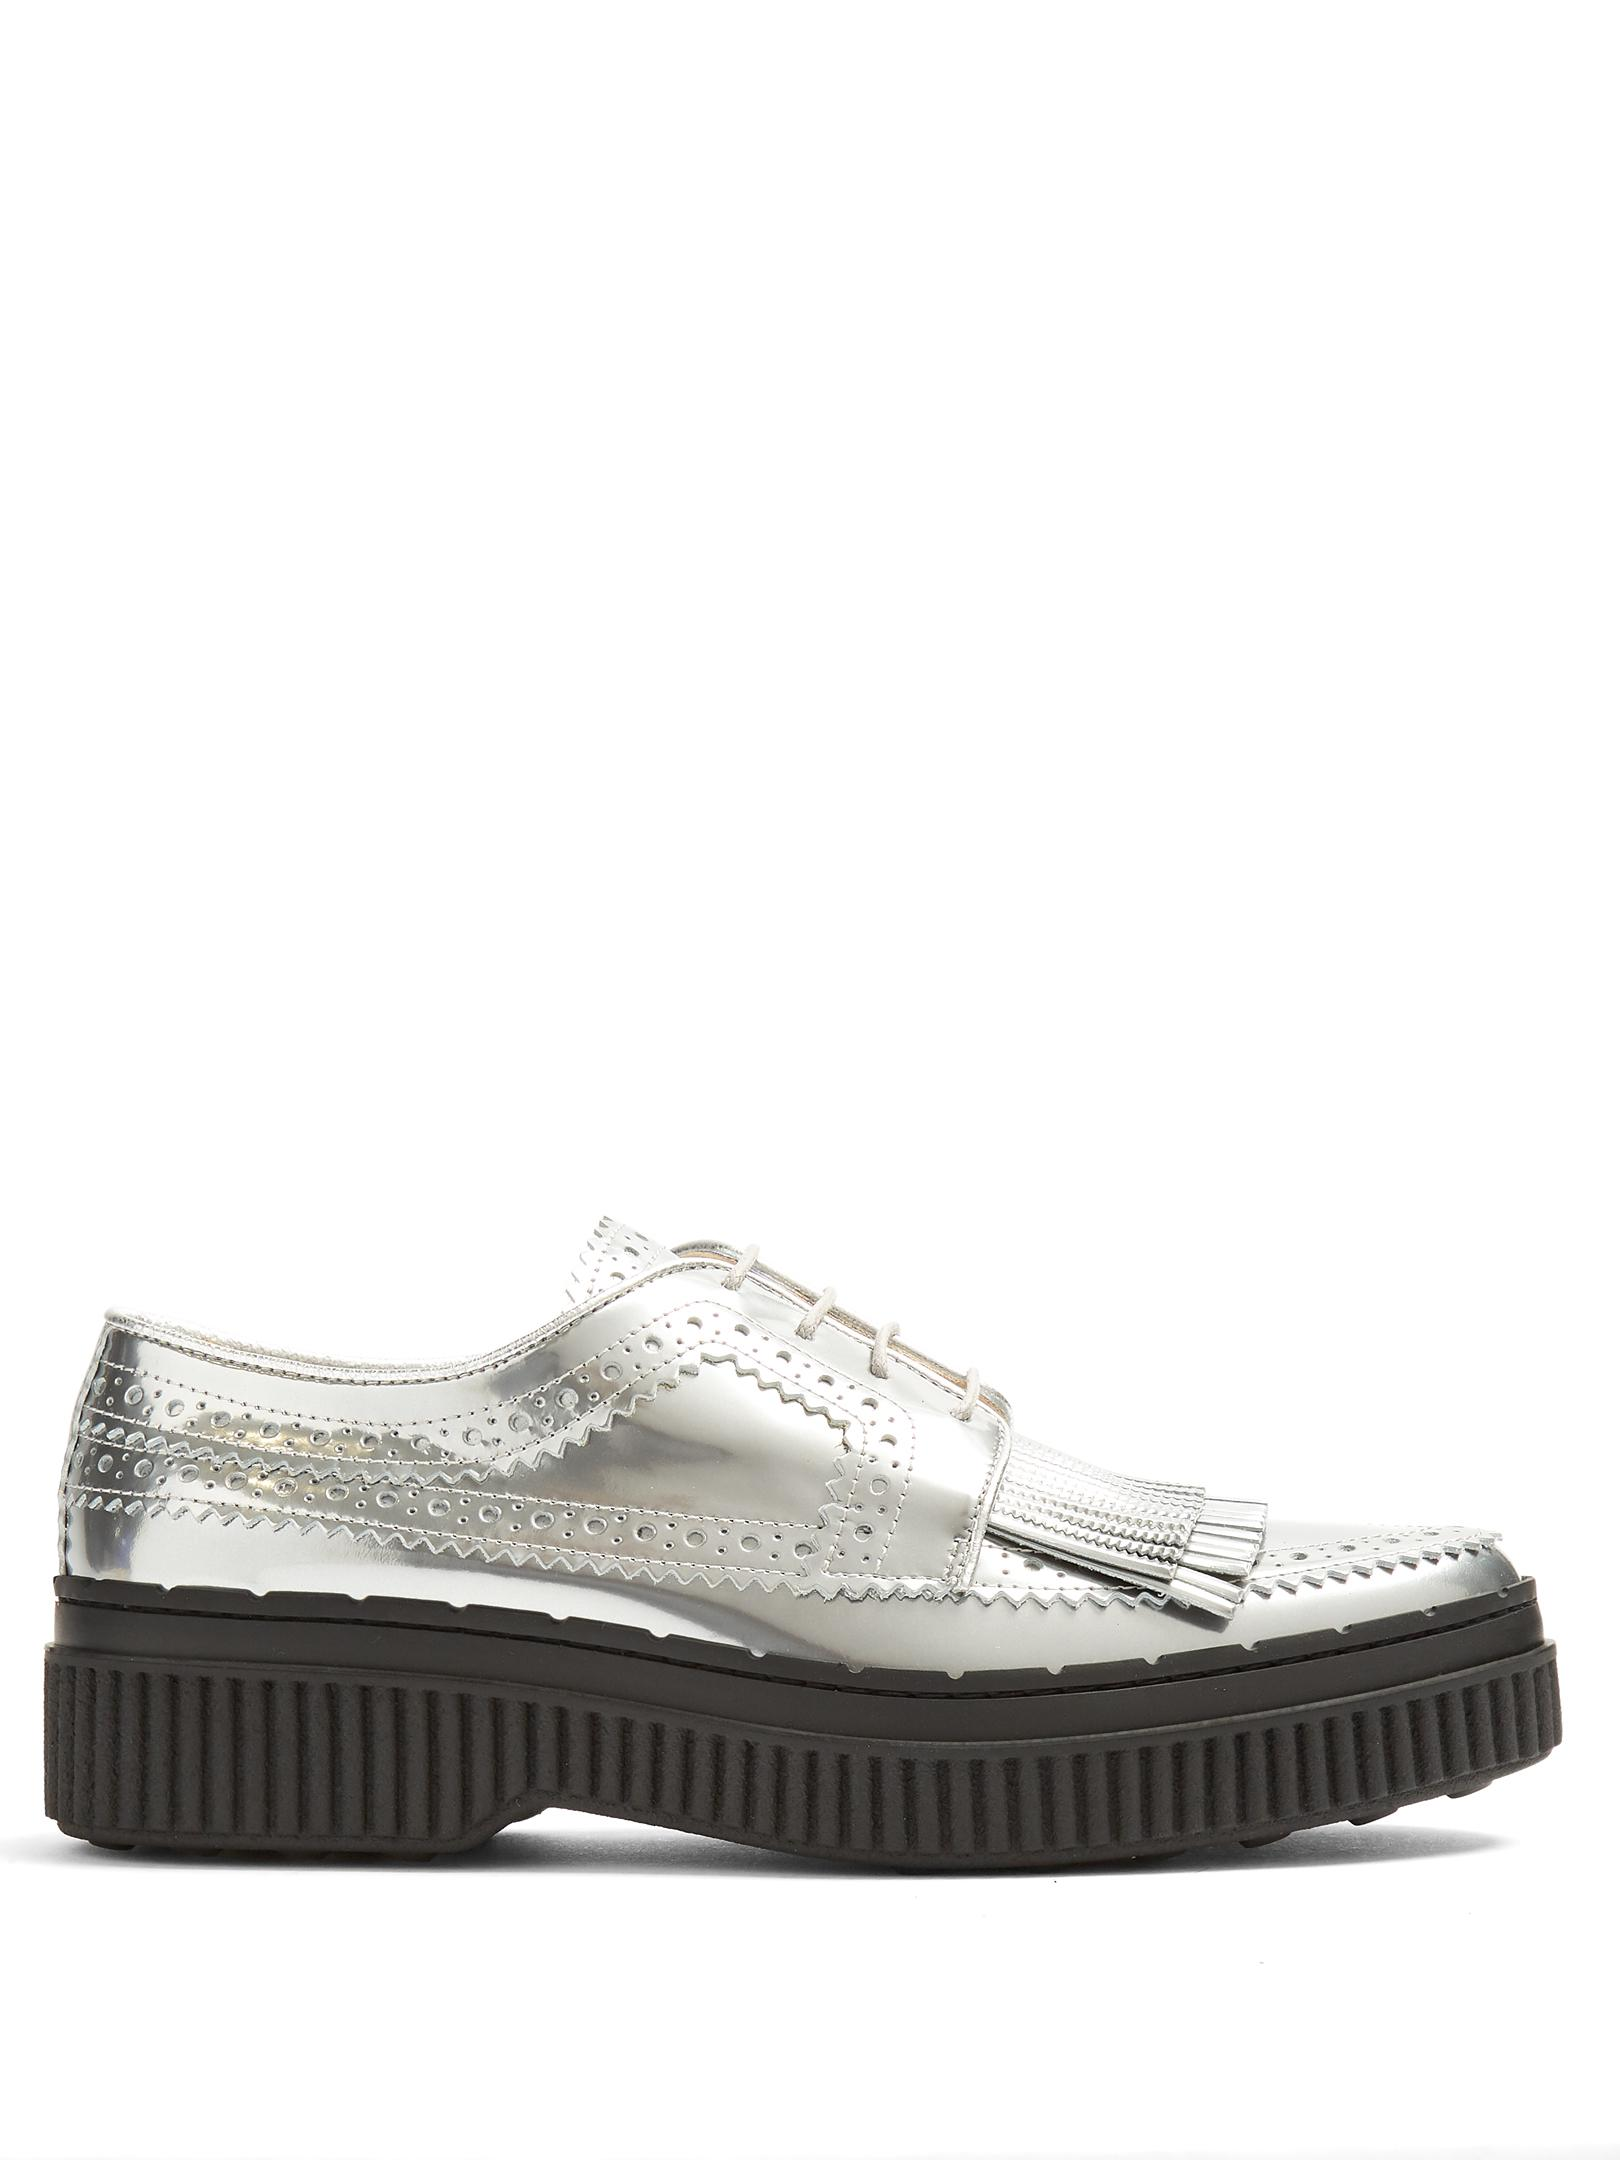 New Arrival Fashion Tod's Fringed brogue-detail leather creepers Latest Collections Sale Online Fashion Style Cheap Price 2018 Cheap Online Discount Low Shipping Fee xi1Xsf